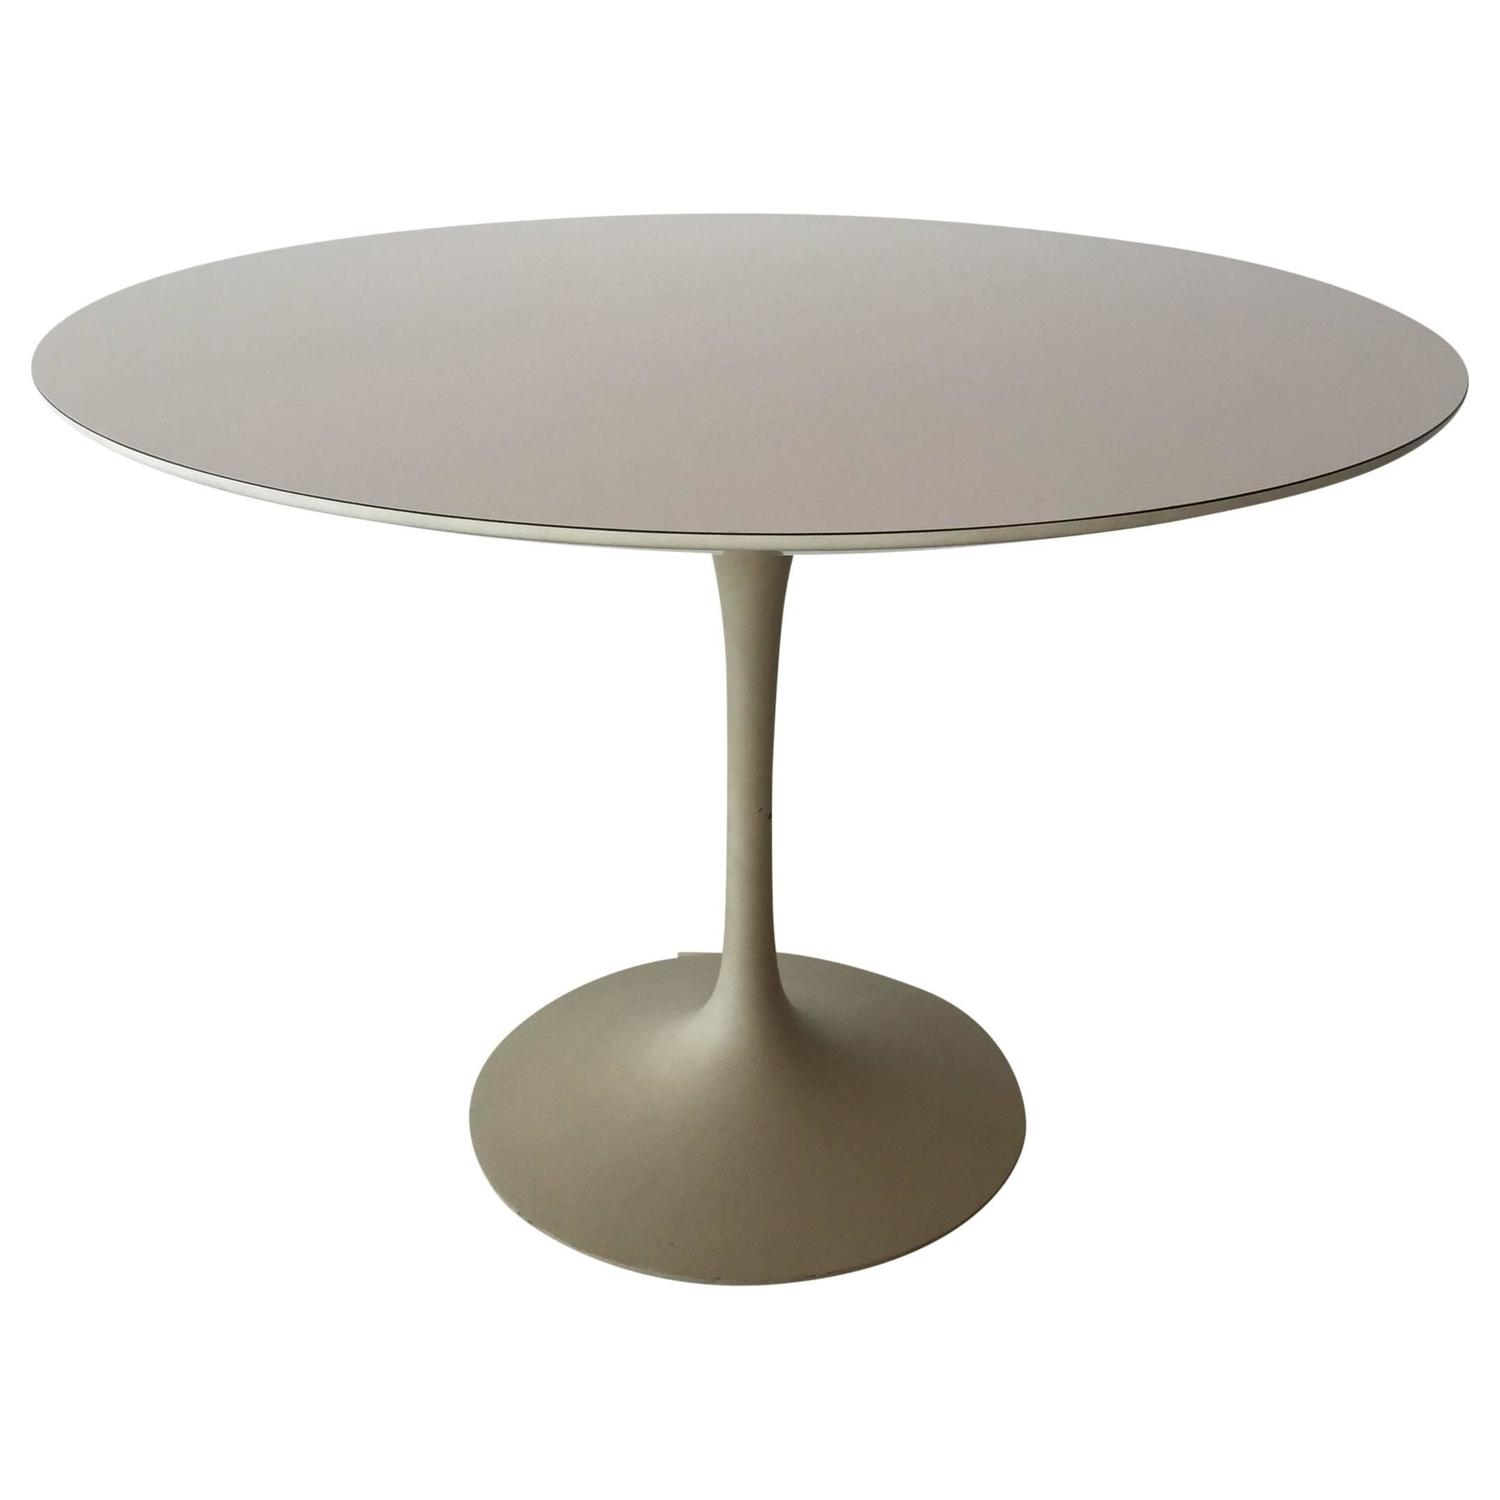 Eero saarinen for knoll associates 39 tulip 39 dining table for Tulip dining table